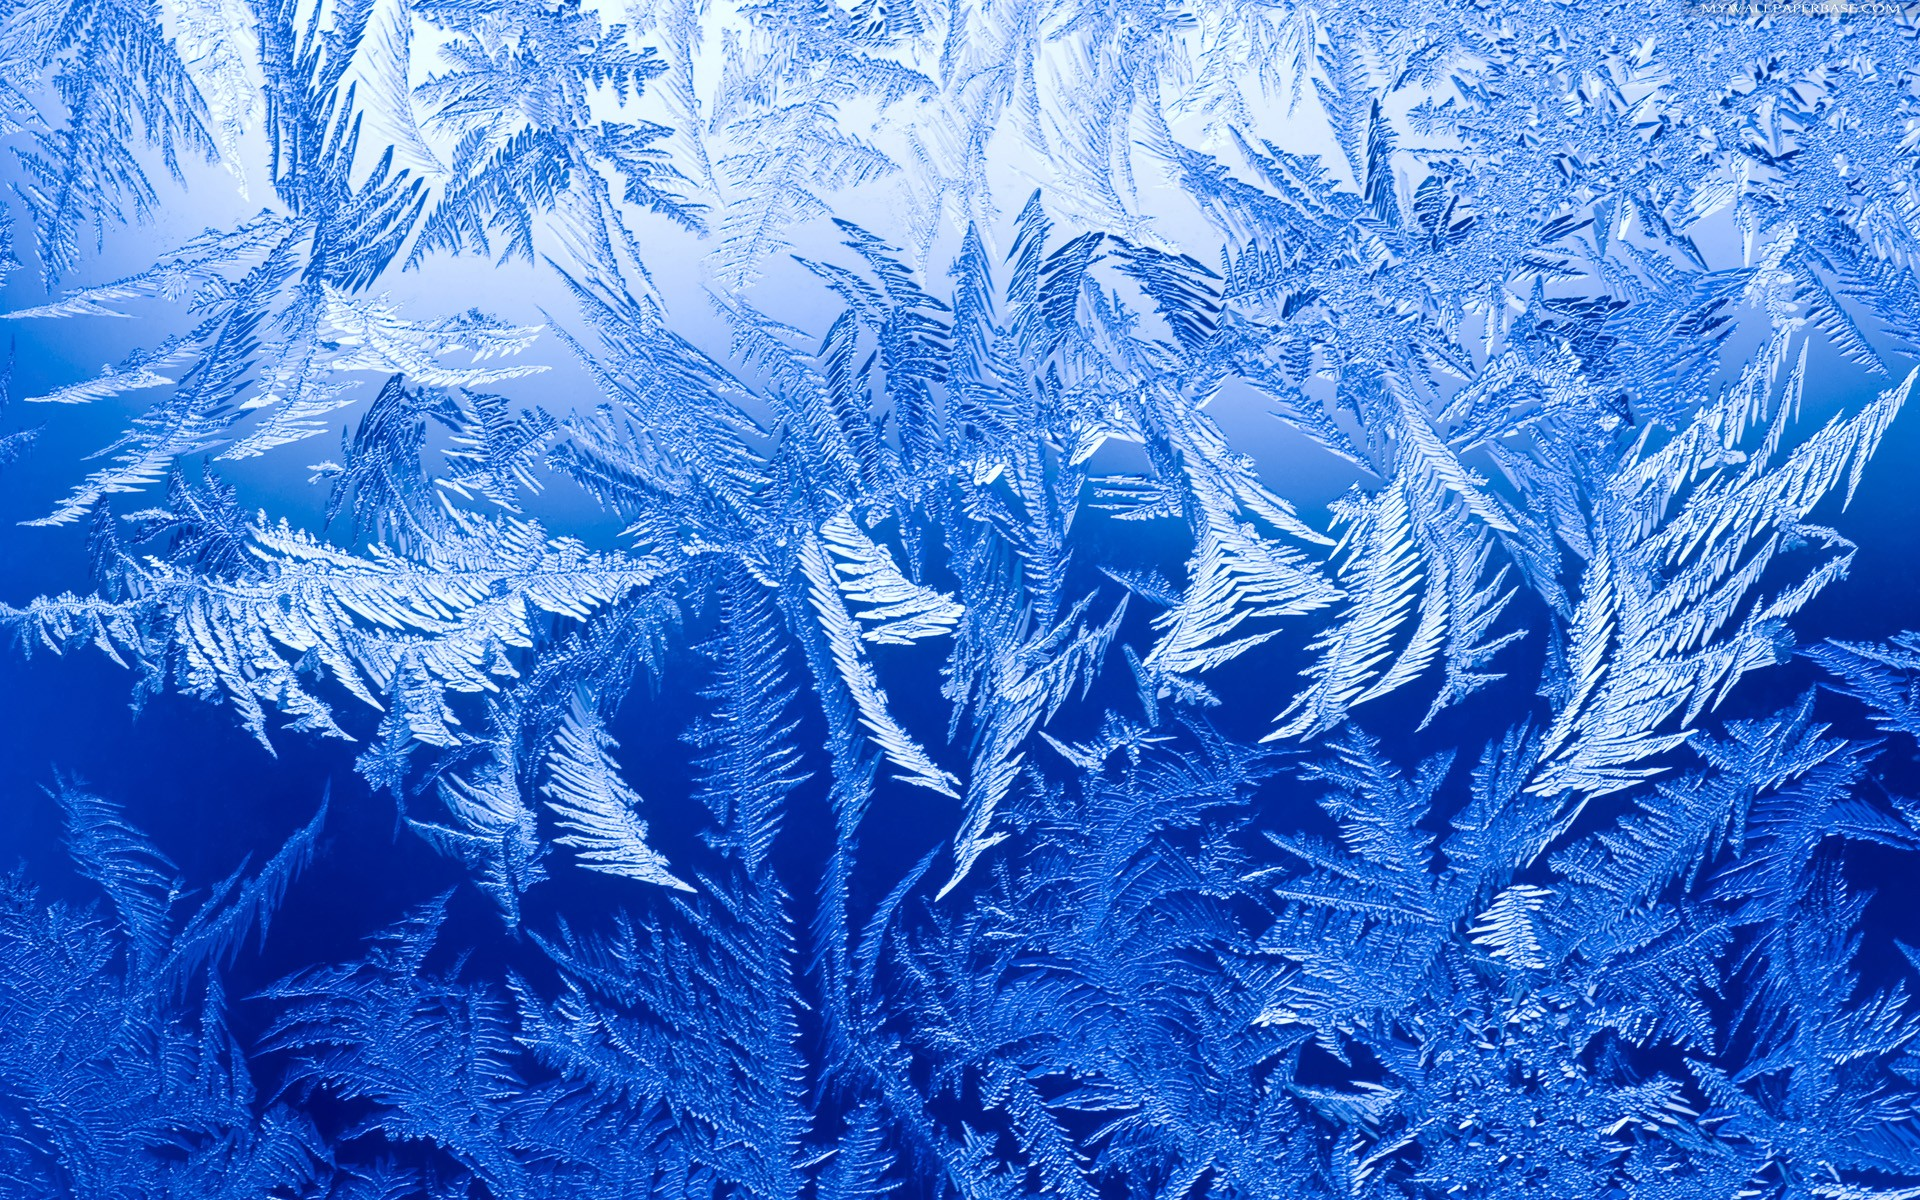 Ice Winter Wallpaper HD